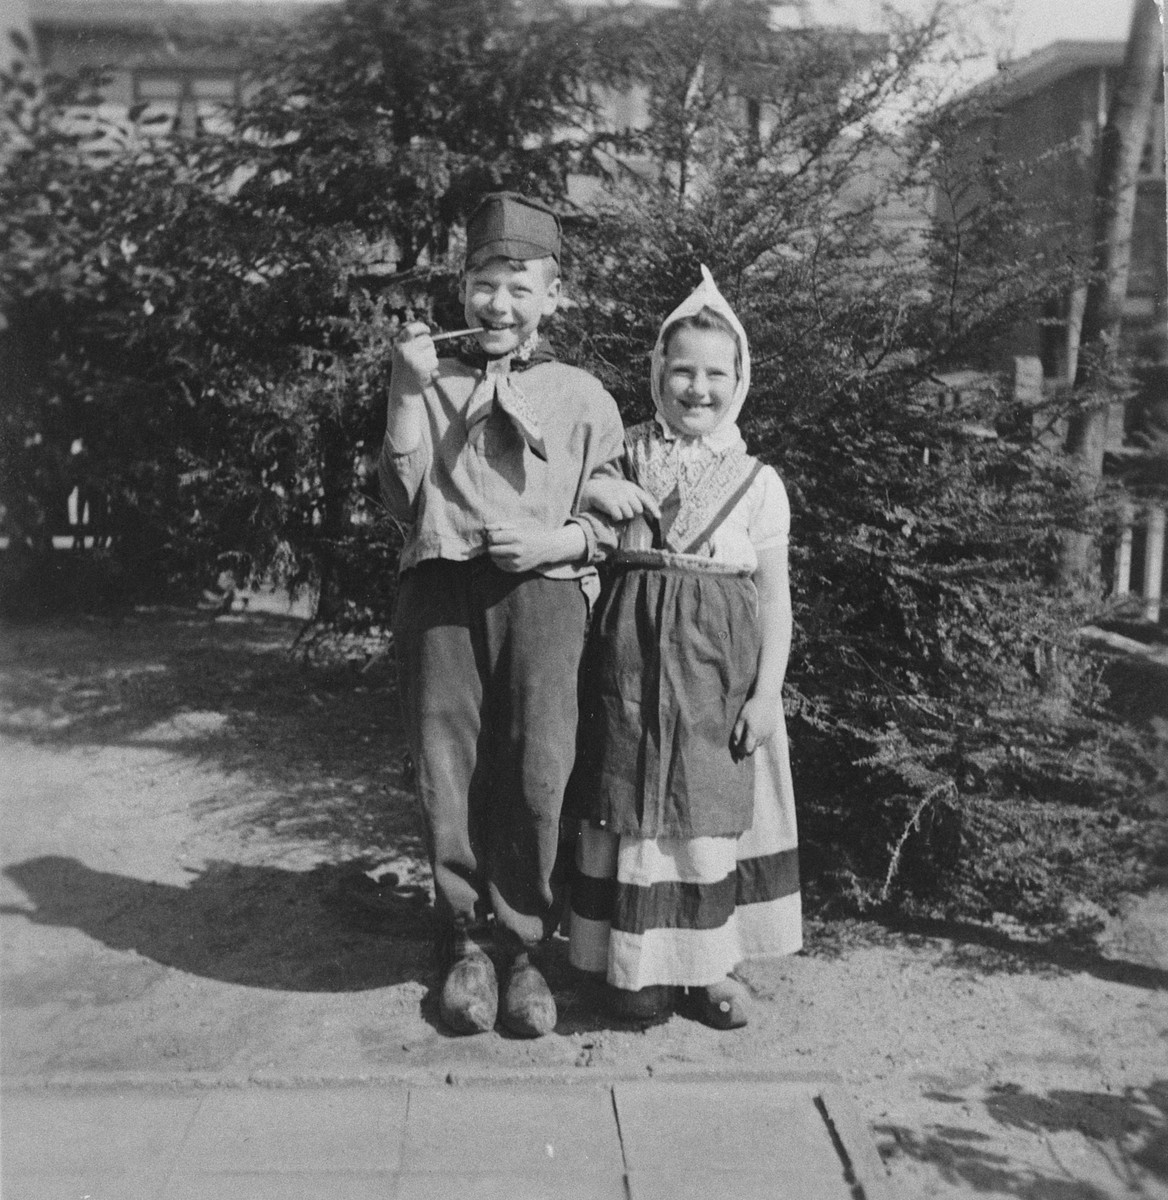 Max and Miep van Engel celebrate Purim by dressing up in traditional Dutch costumes.  The siblings had survived the war in hiding.